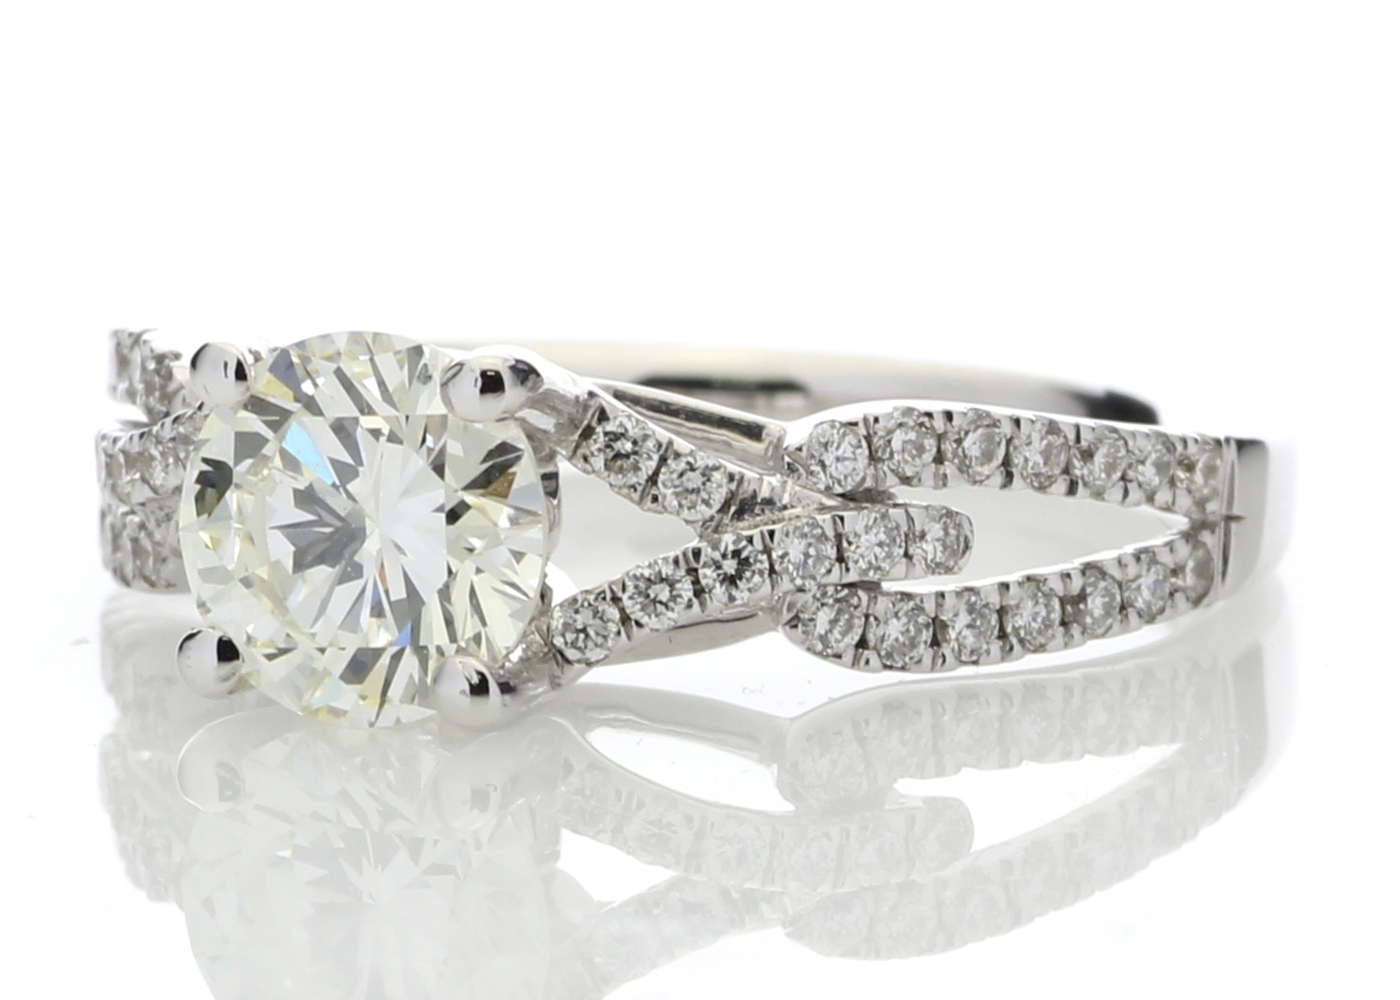 18ct White Gold Claw Set With Stone Set Shoulders Diamond Ring 1.32 Carats - Image 2 of 5